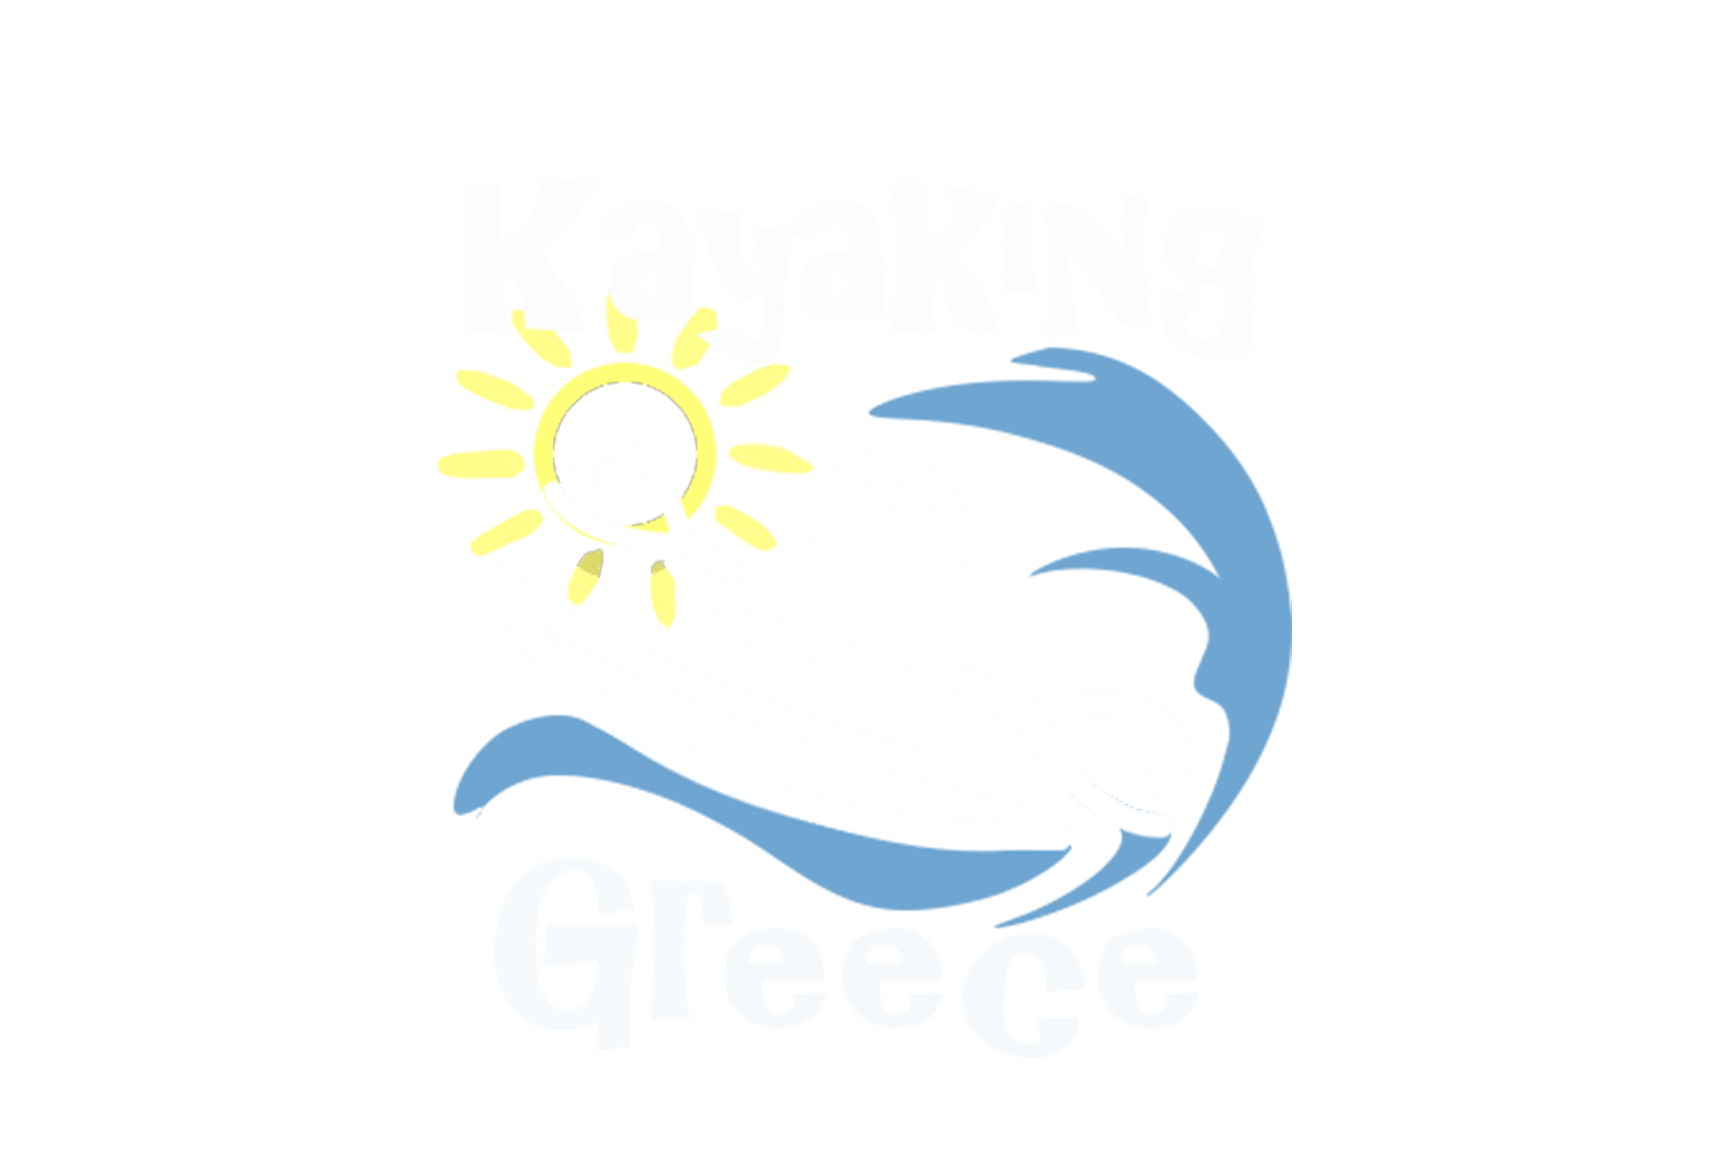 Kayaking Greece